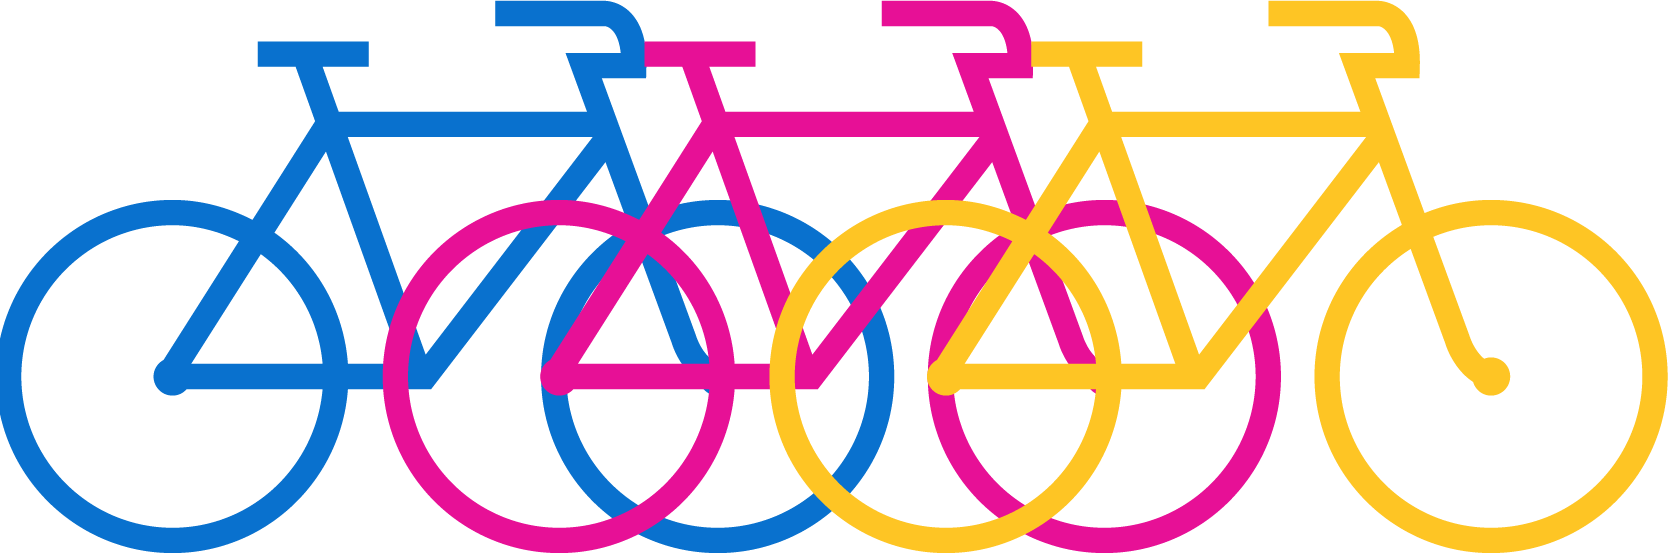 Ayrshire Women's Virtual Cycle Festival